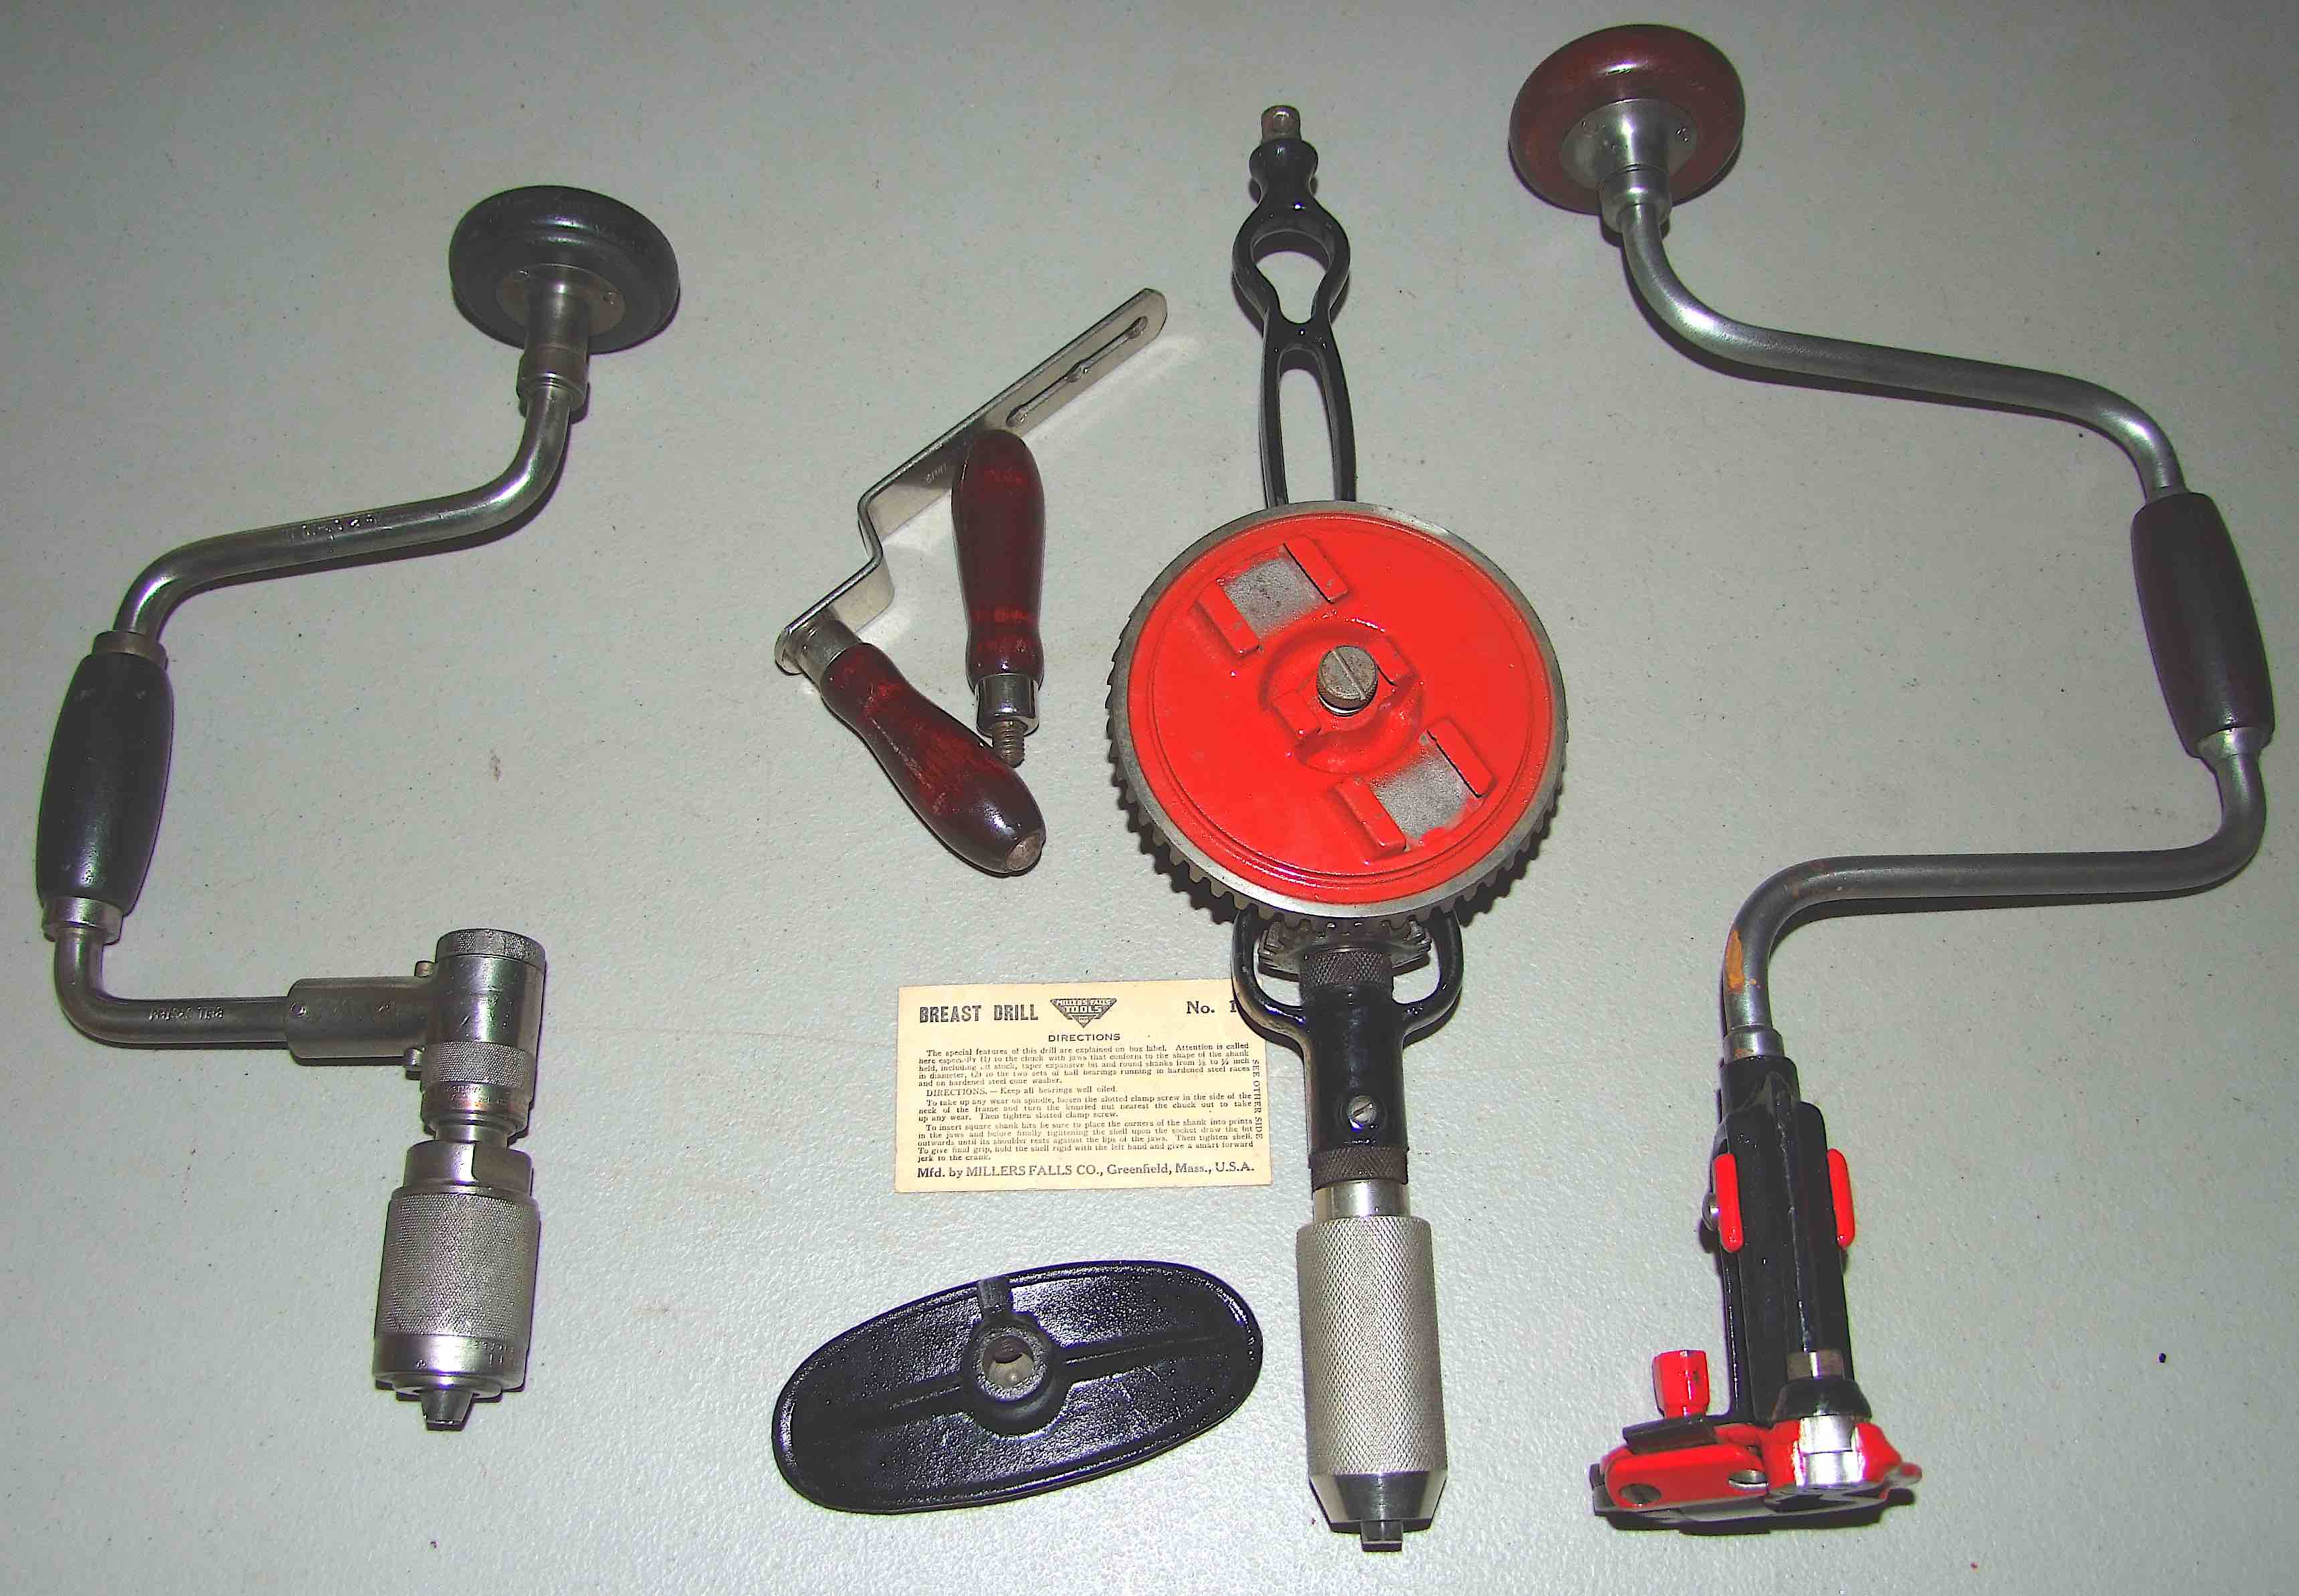 Real tools at realistic prices